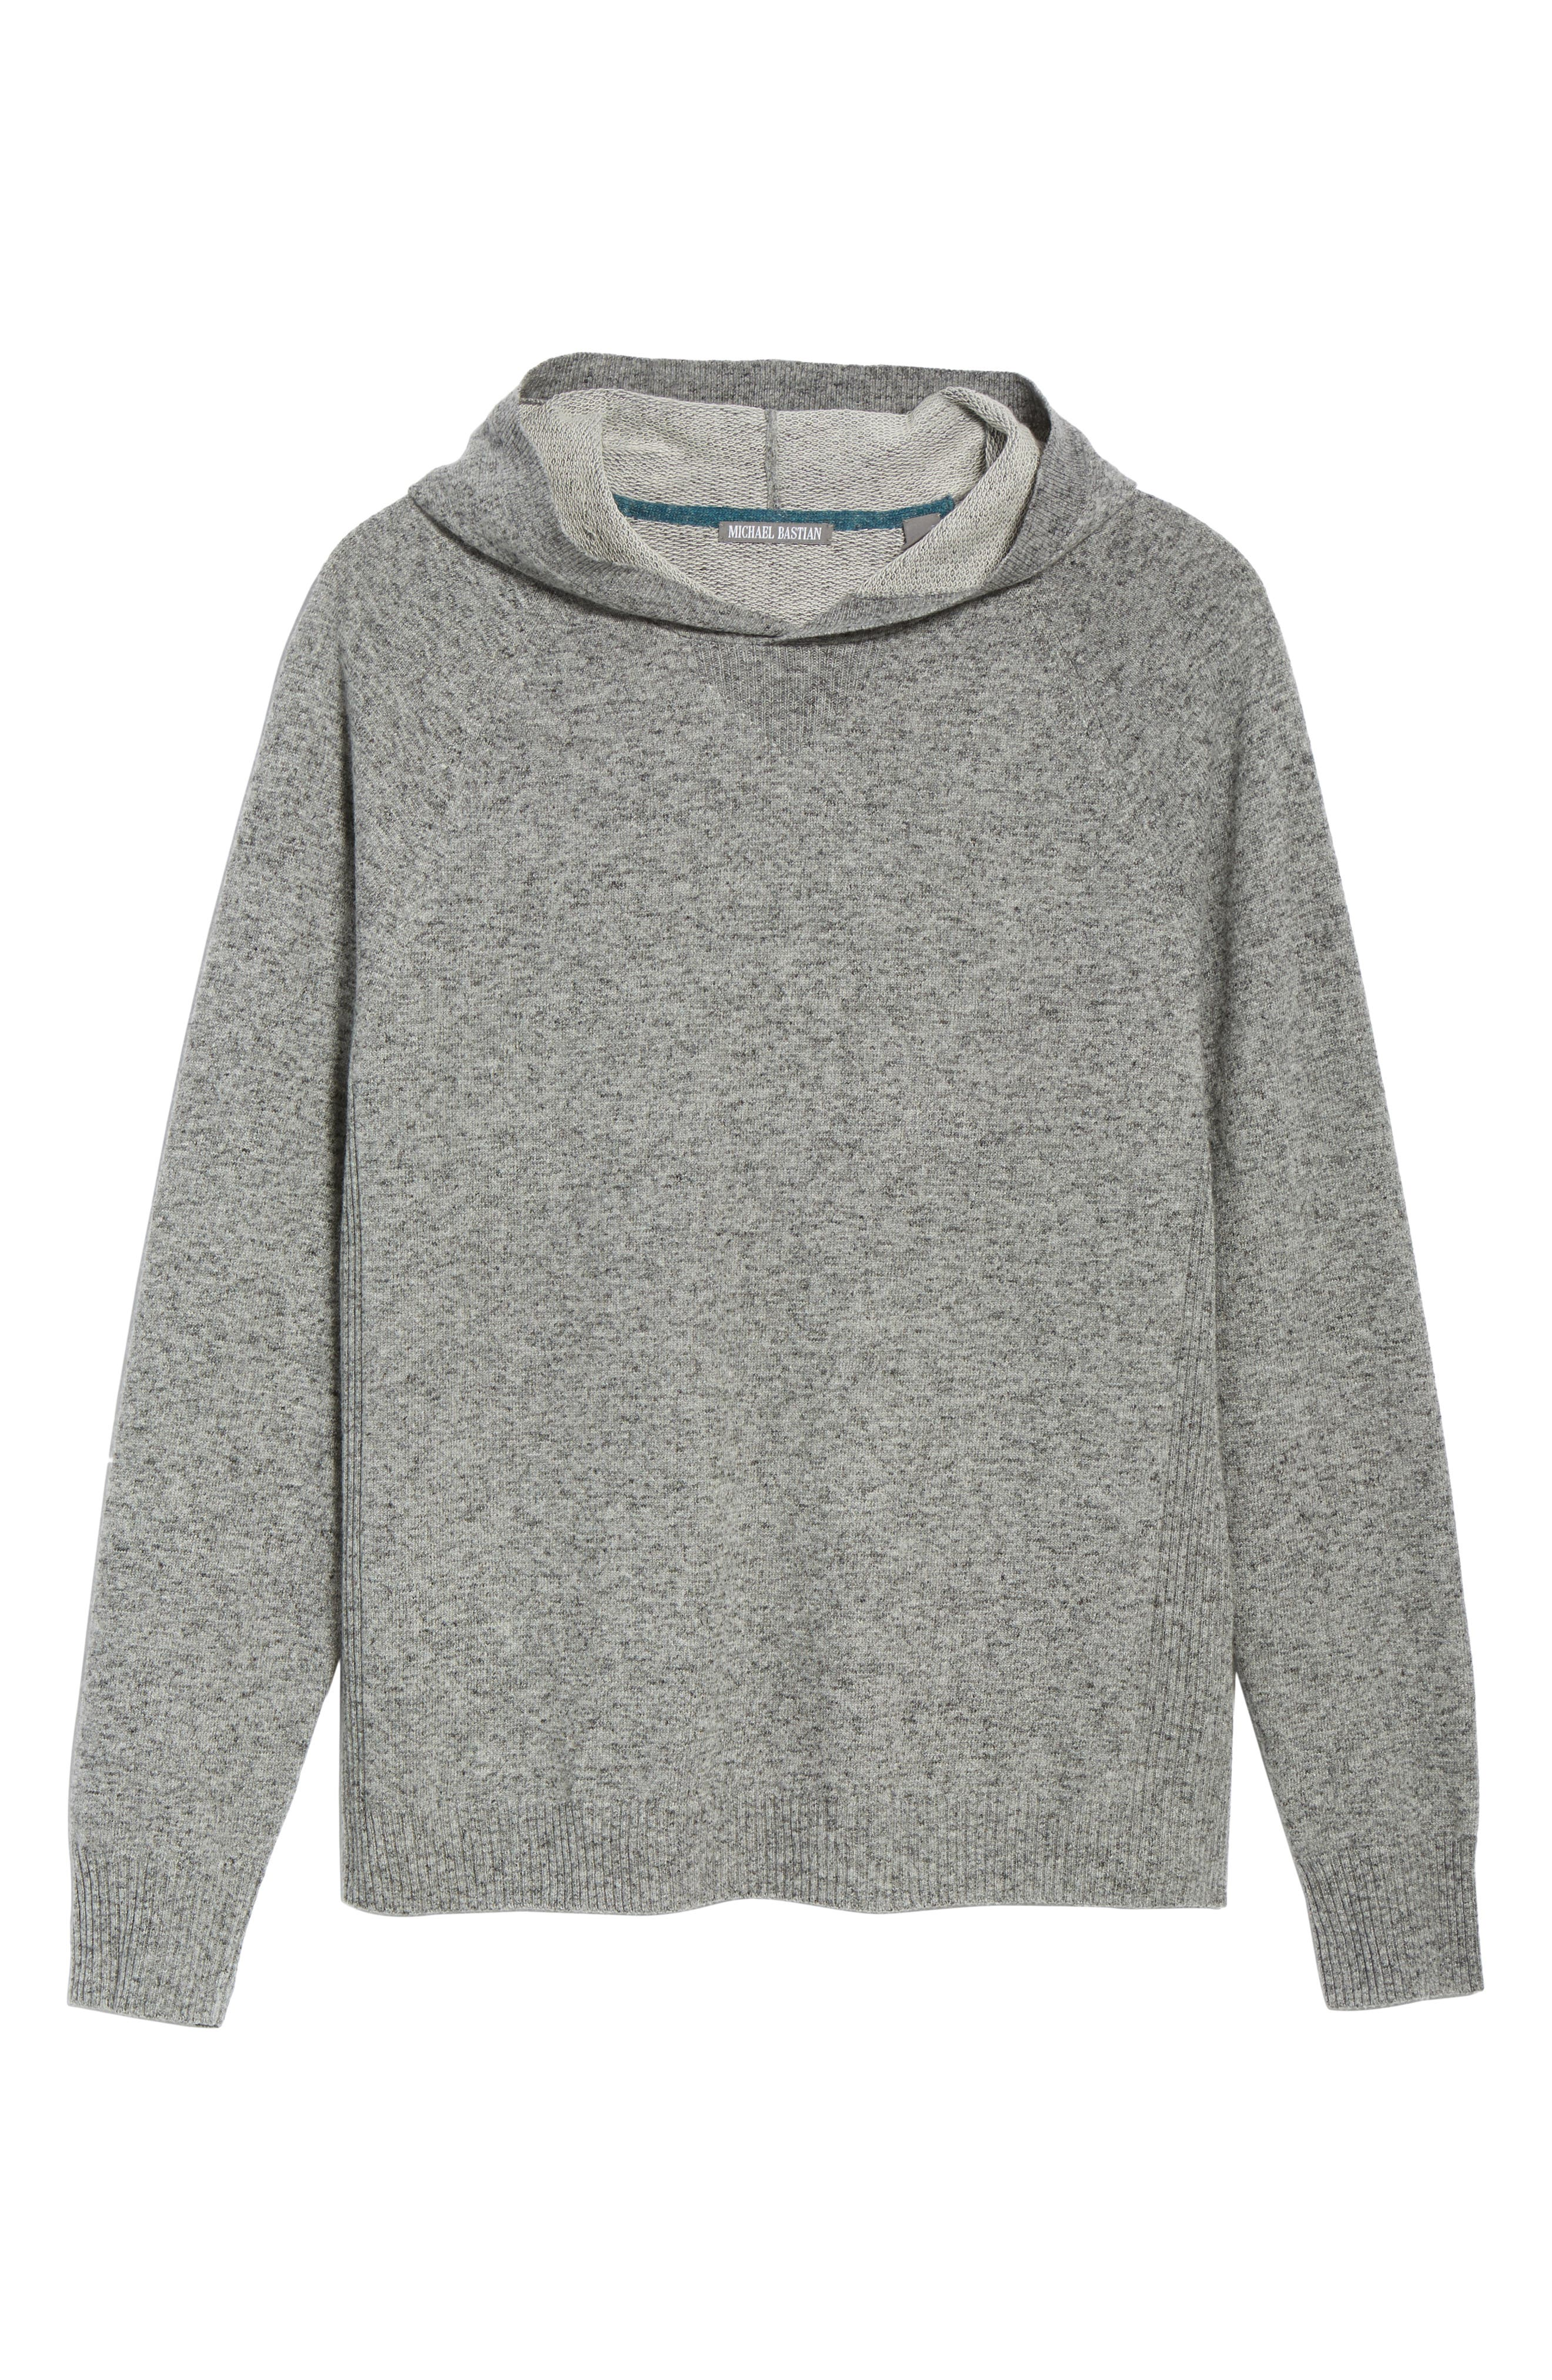 Hooded Sweater,                             Alternate thumbnail 6, color,                             060